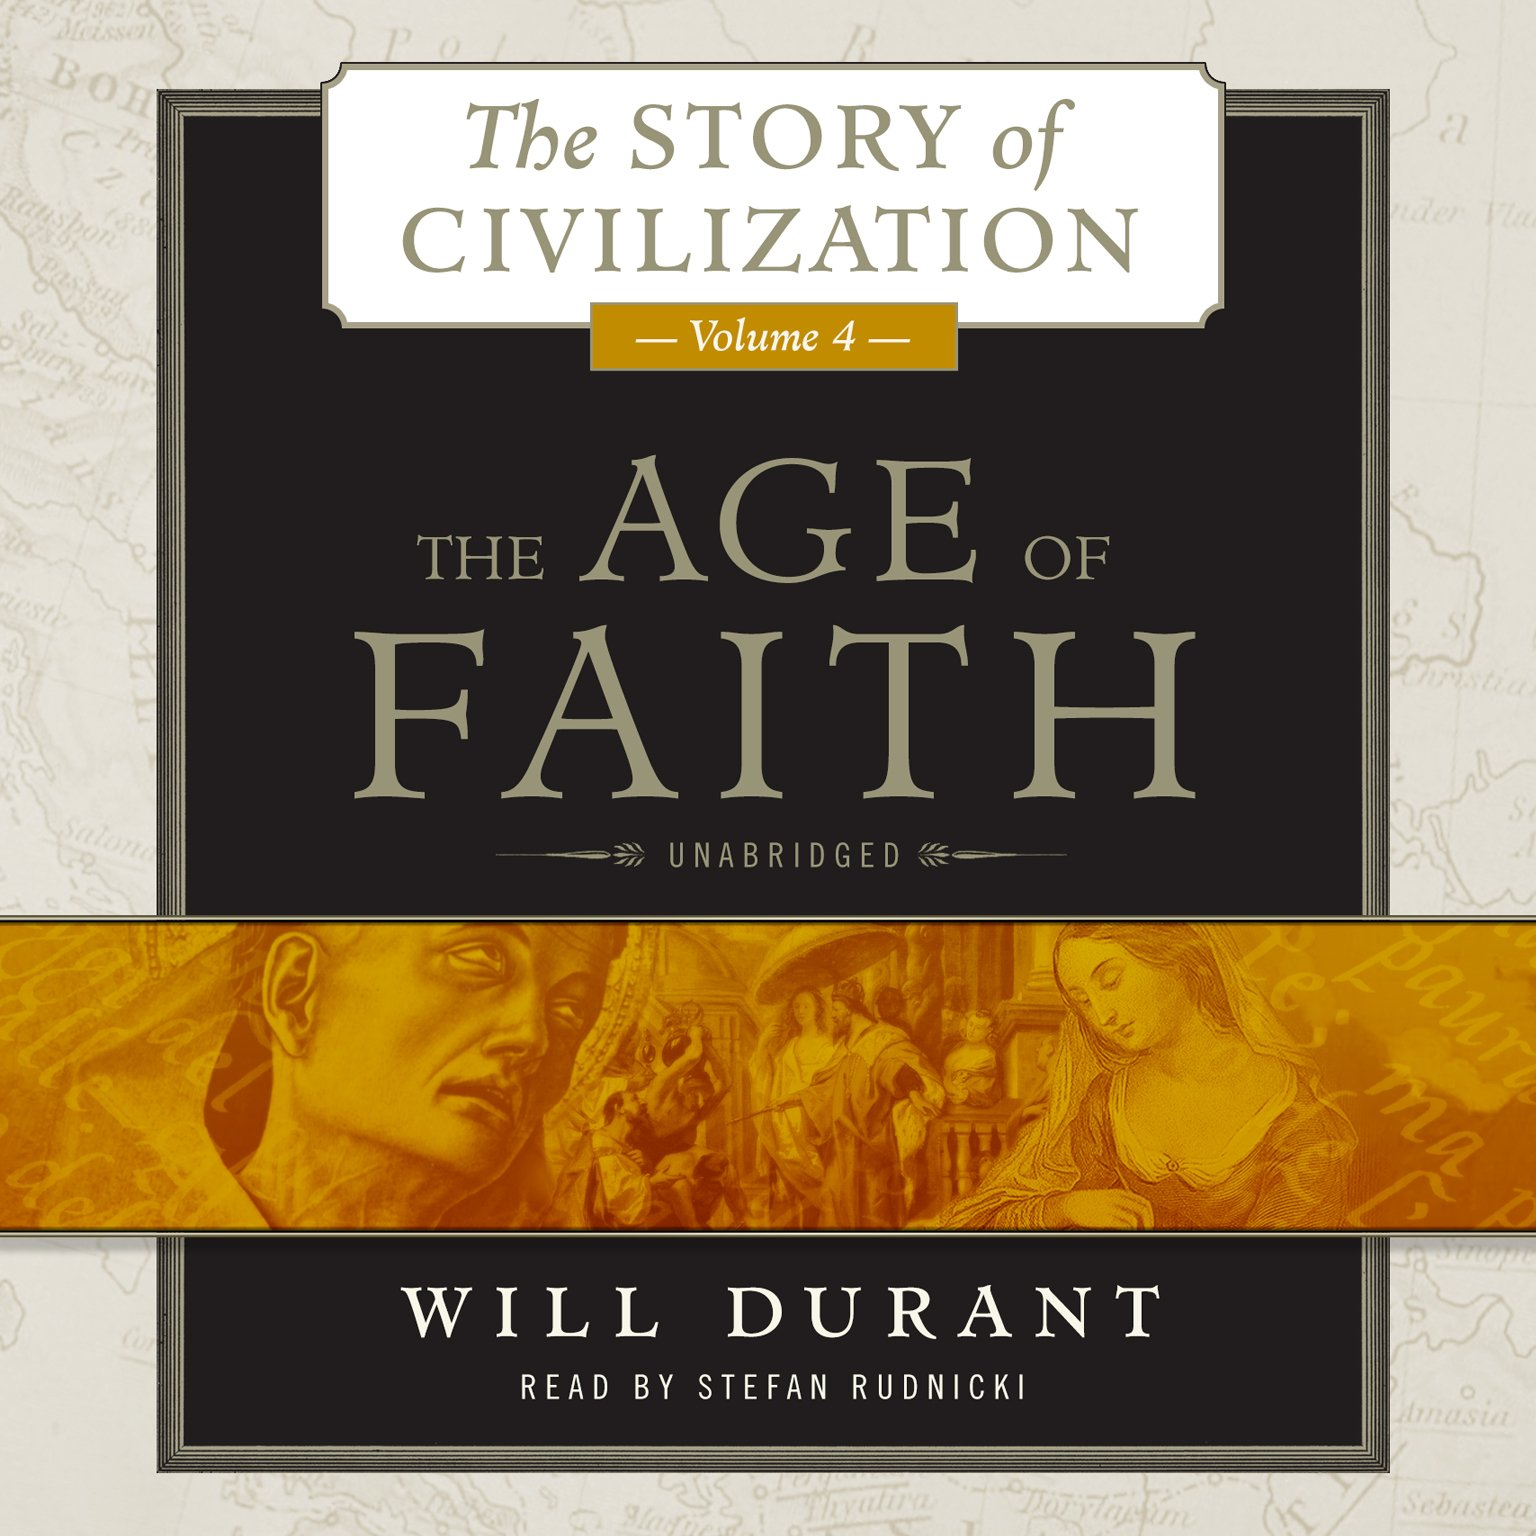 The Age of Faith: A History of Medieval Civilization (Christian, Islamic, and Judaic) from Constantine to Dante, A.D. 325  1300  (The Story of Civilization series, Volume 4)